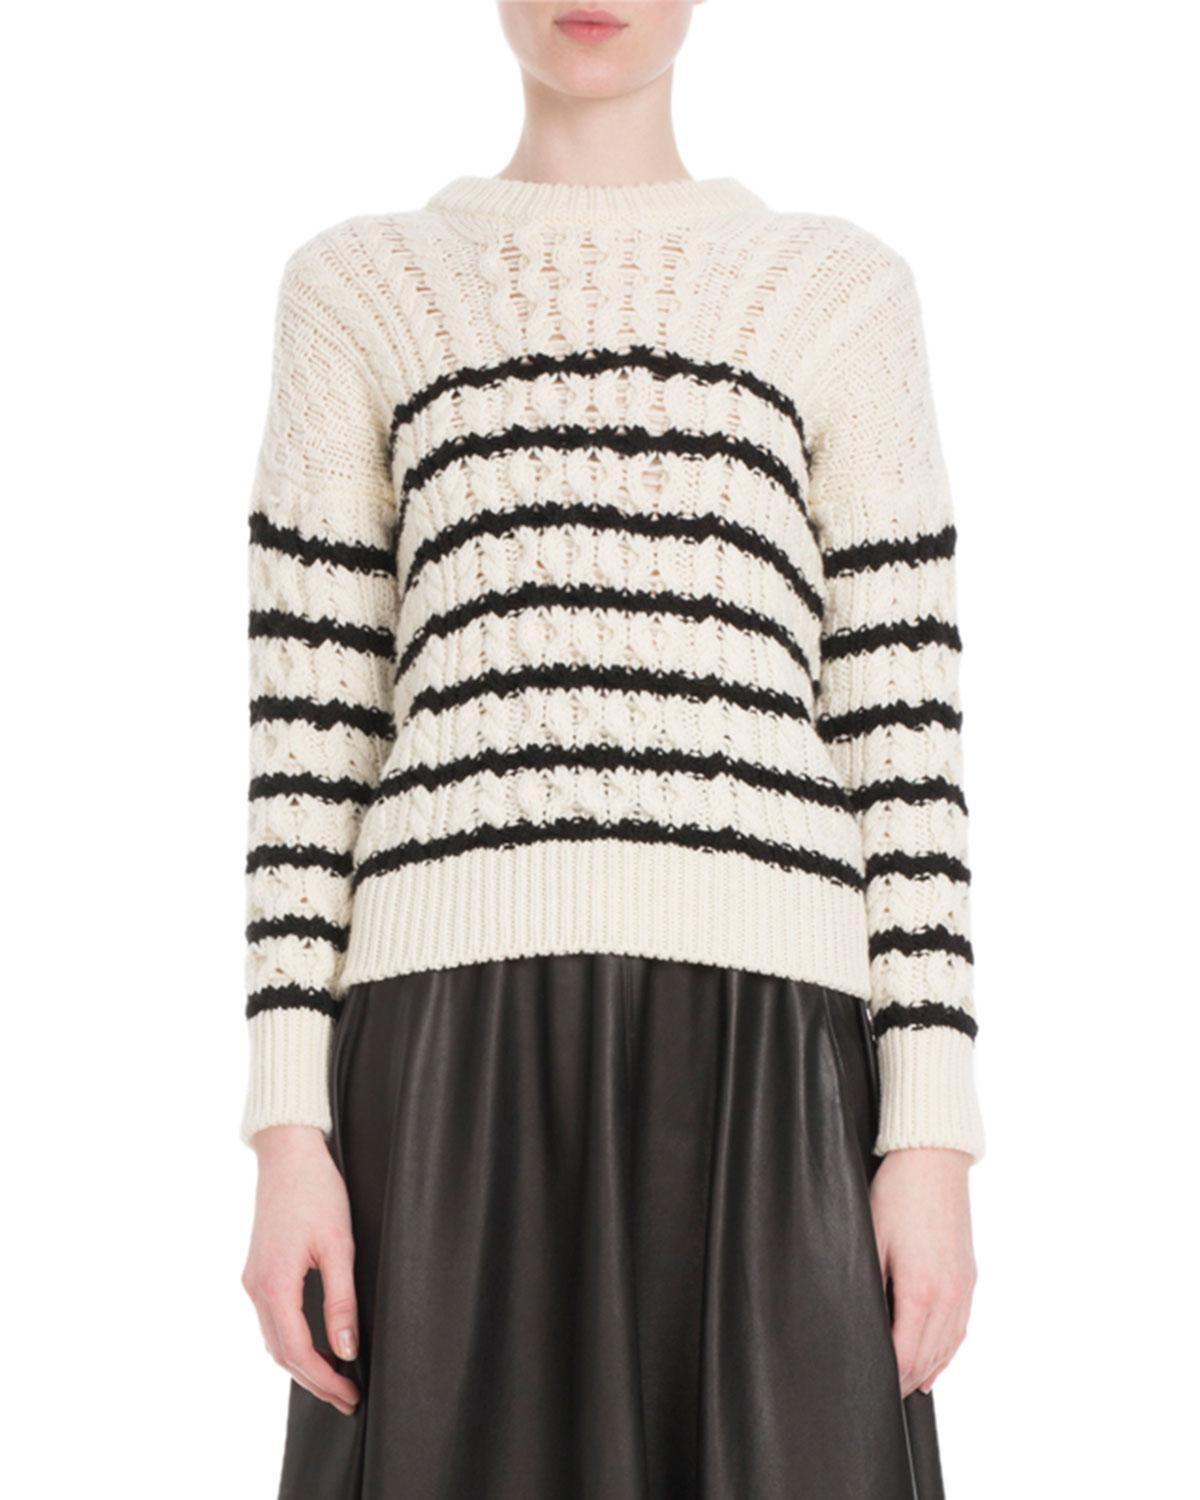 dd98681750 Loewe Crewneck Striped Cable-Knit Wool Sweater In White Black